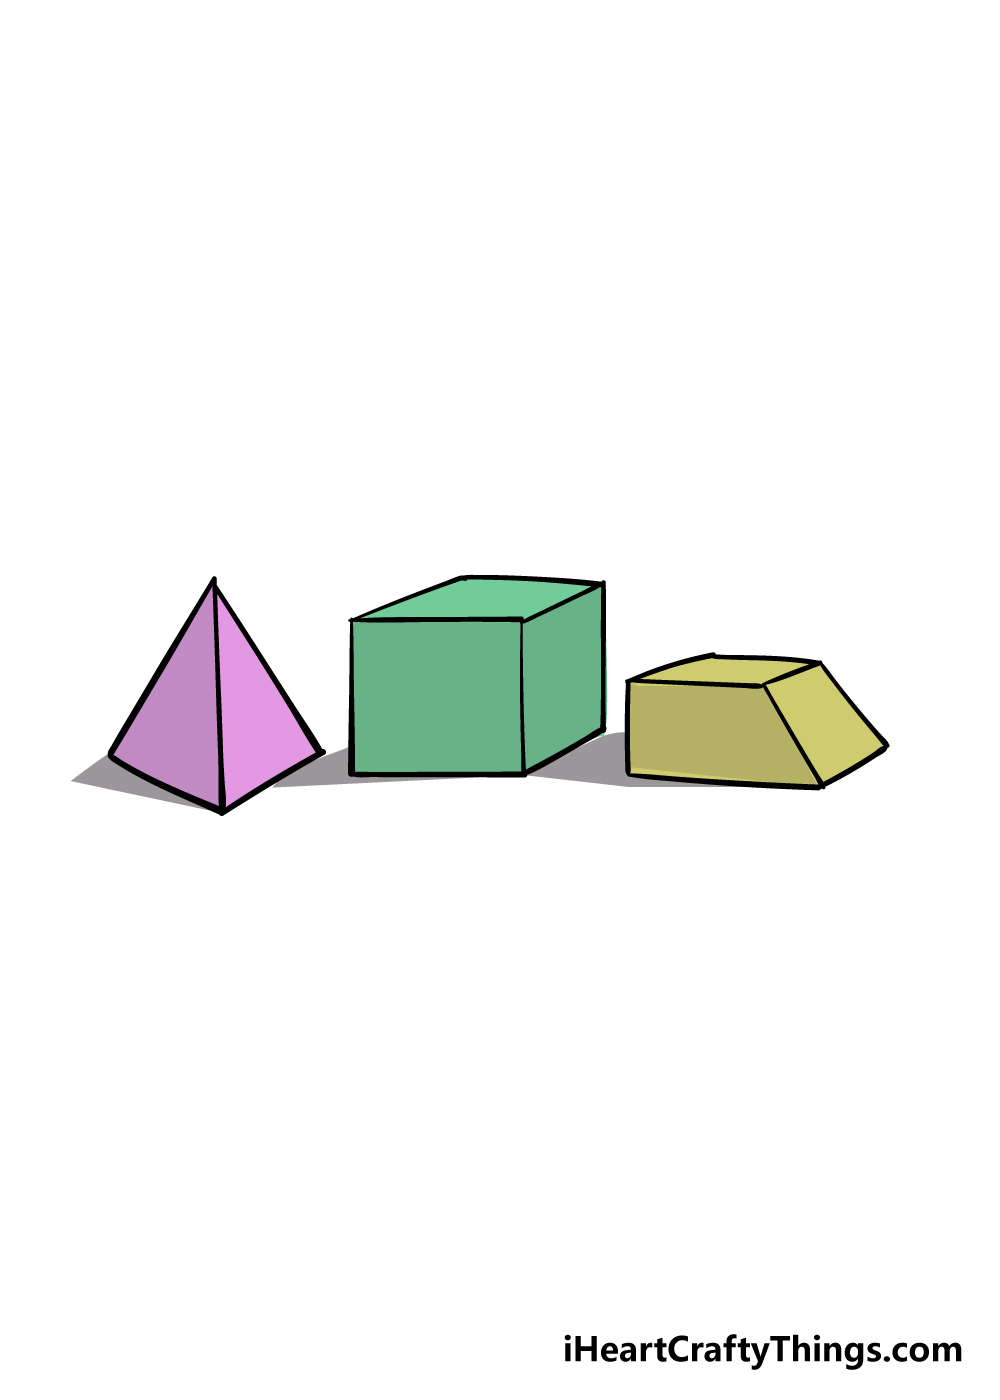 3D shapes drawing step 6